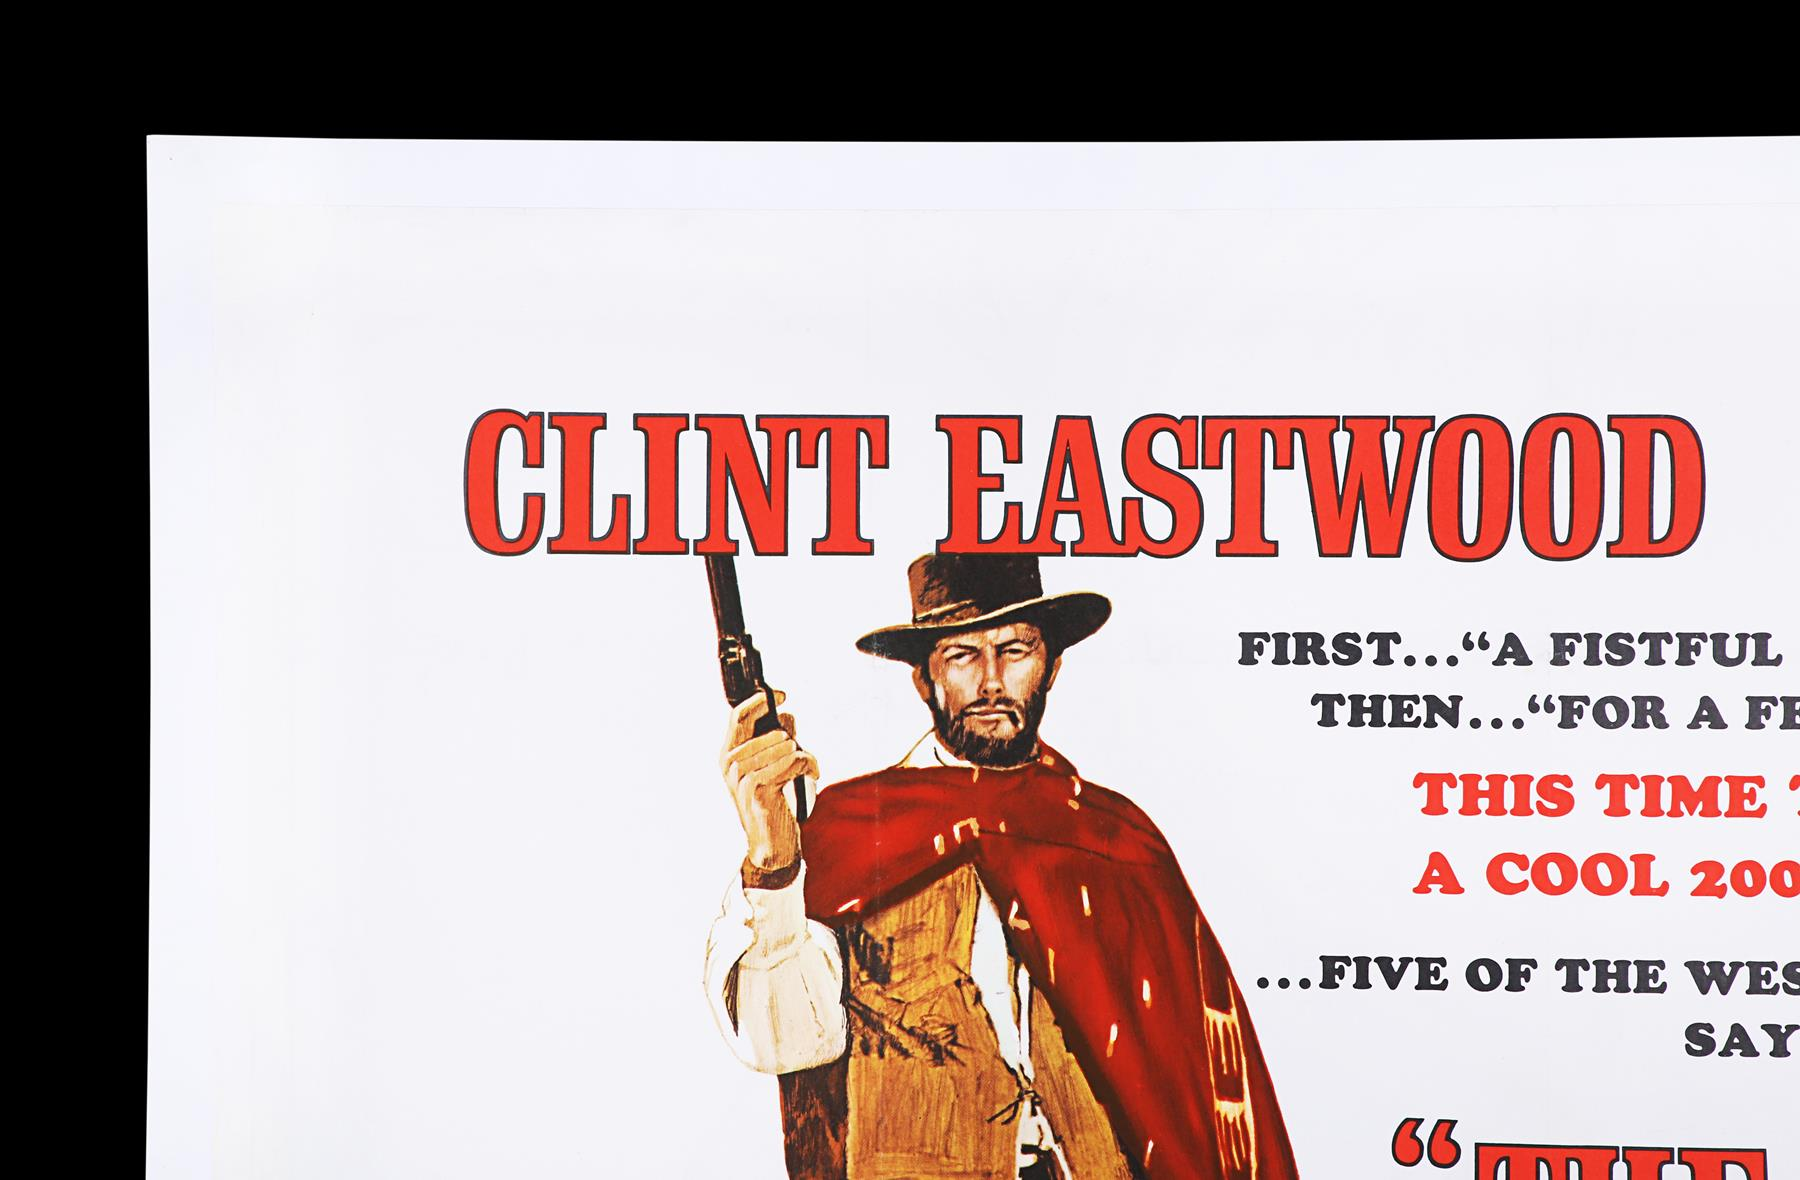 THE GOOD, THE BAD AND THE UGLY (1966) - UK Quad, 1968 - Image 2 of 7